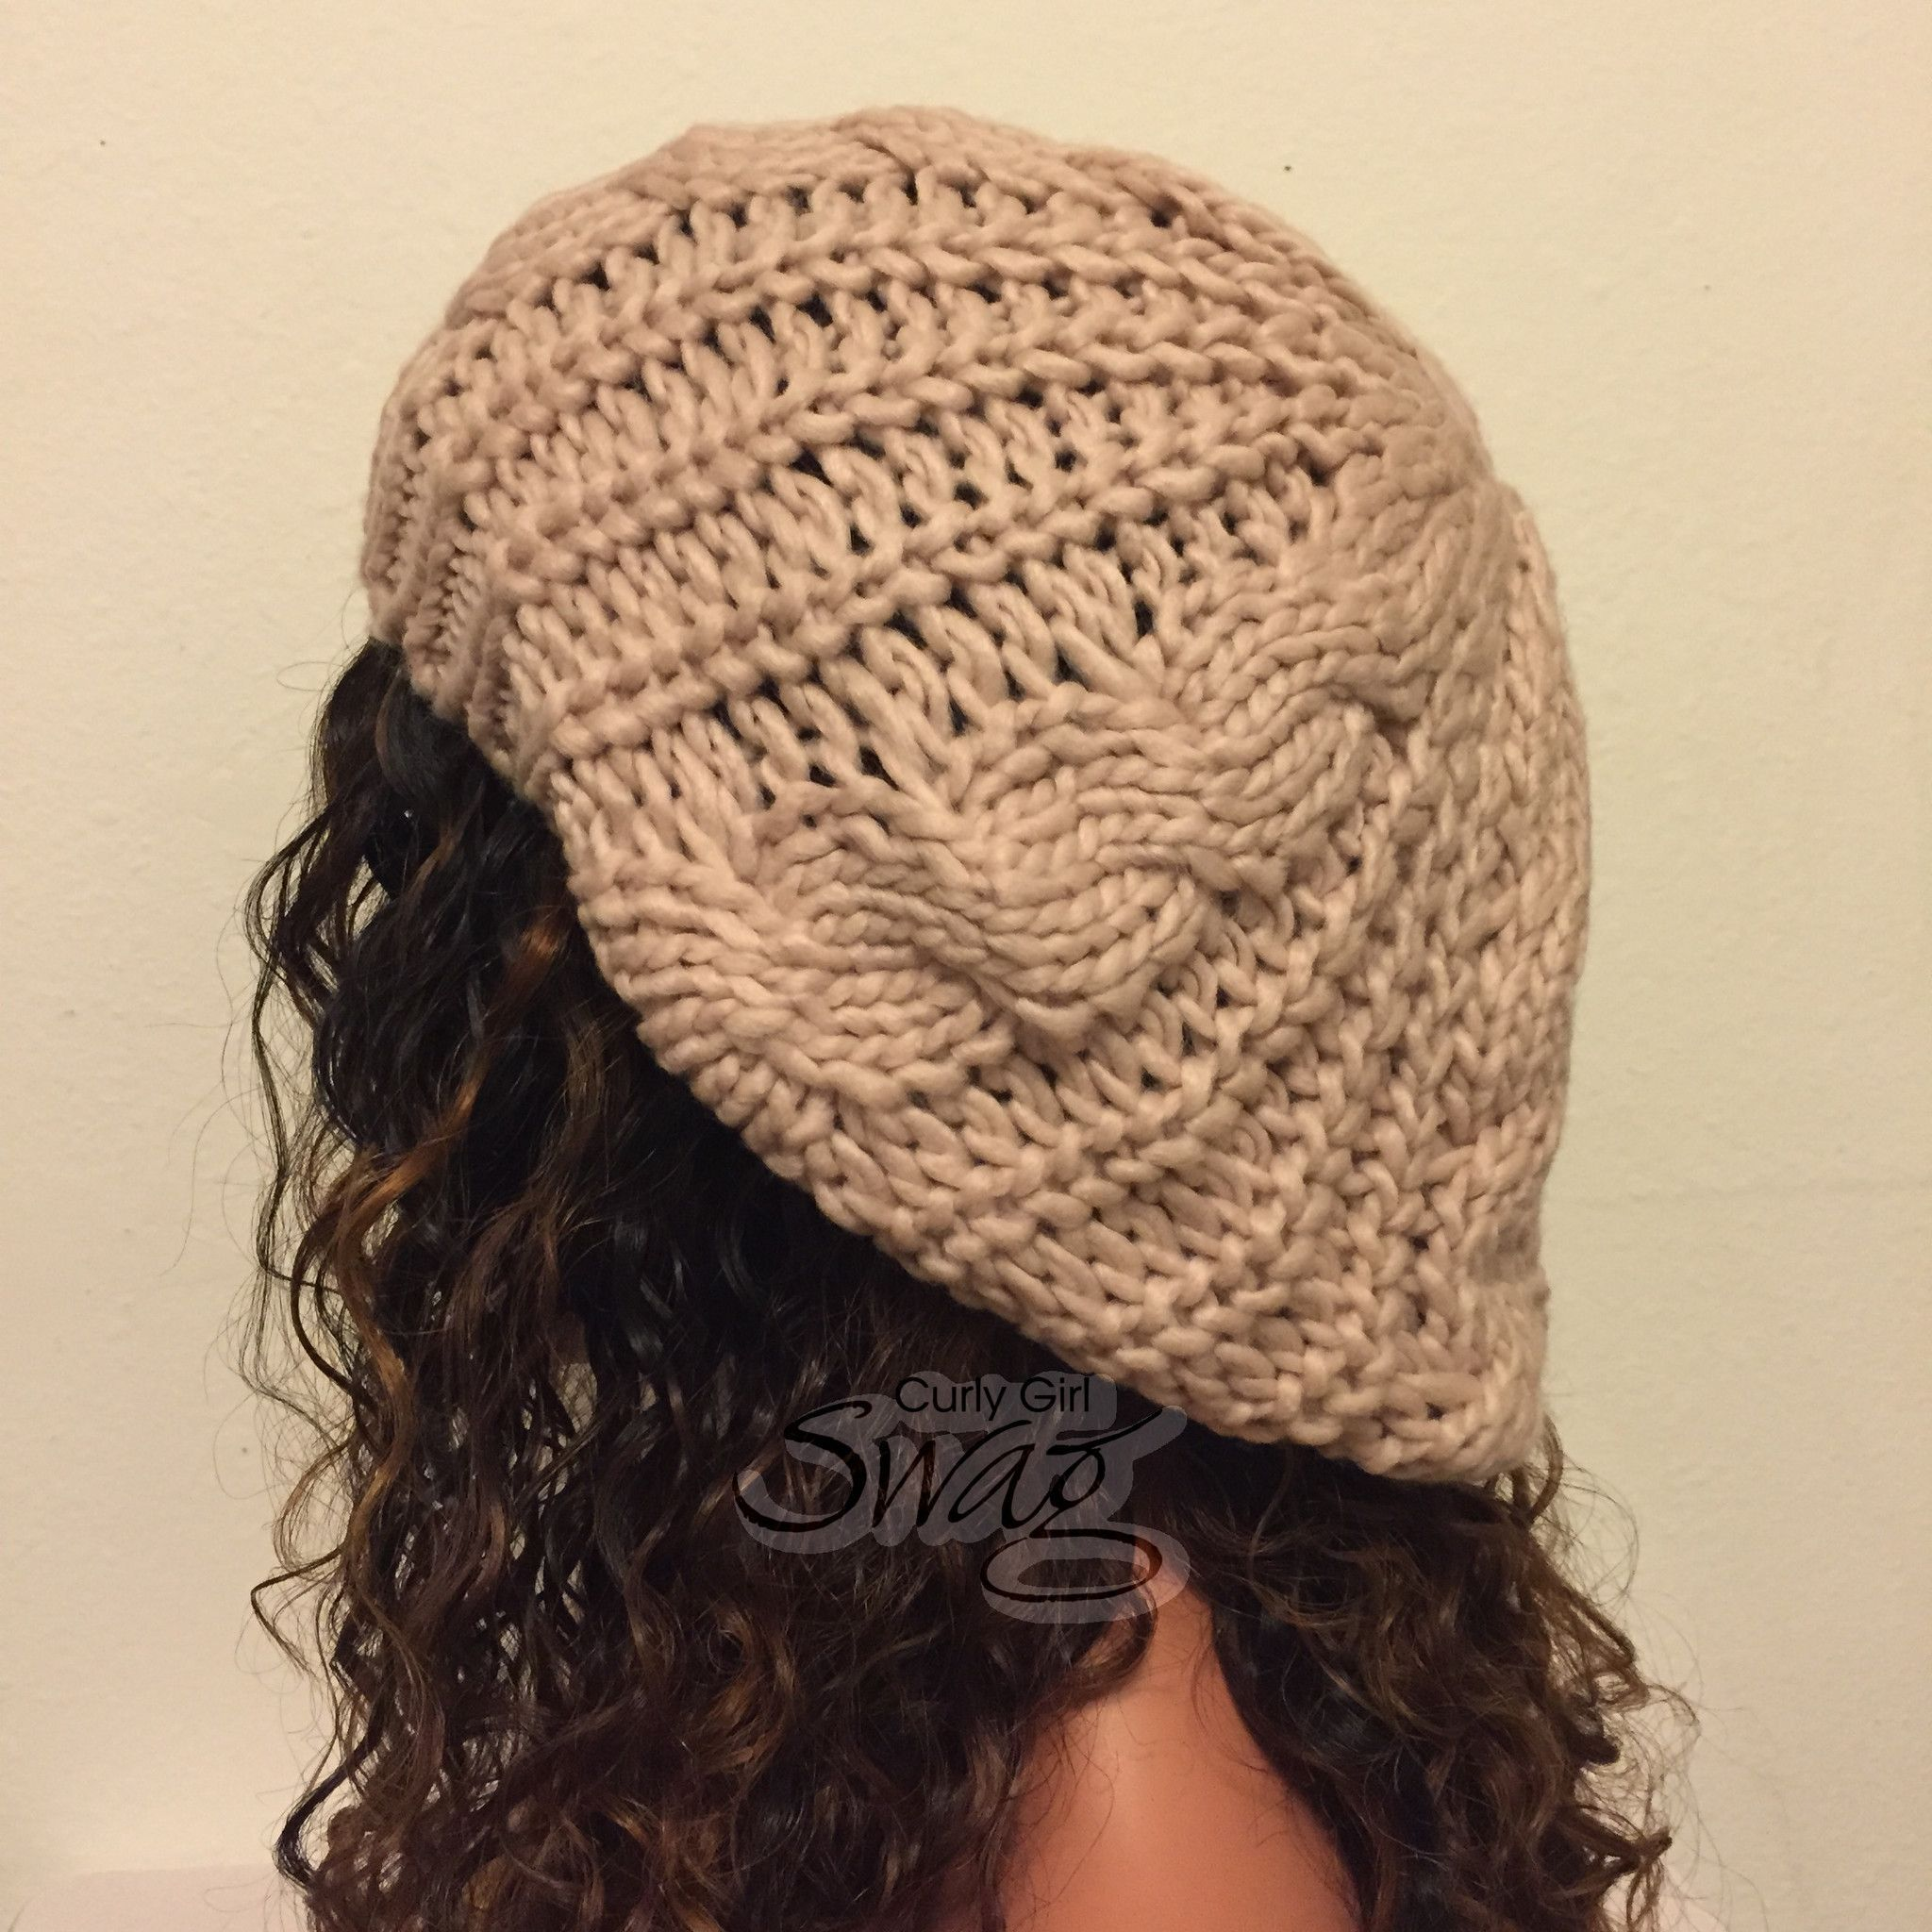 Jumbo Cable Knit Beret Beanie- More Colors Available